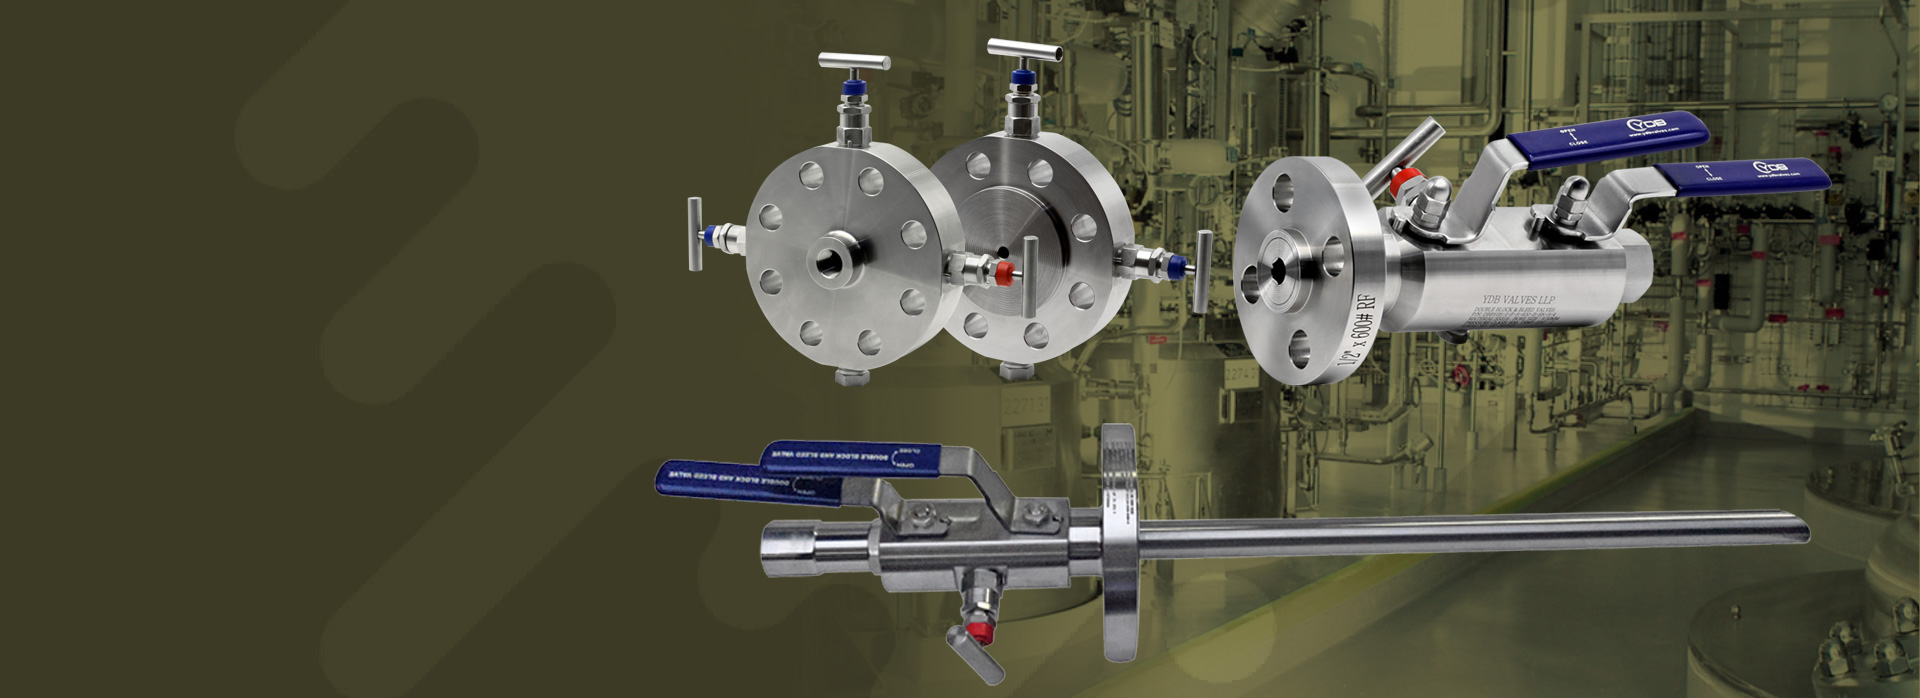 YDB LLP valves products: Double Block & Bleed ( DBB) Valves & Monoflange Valves